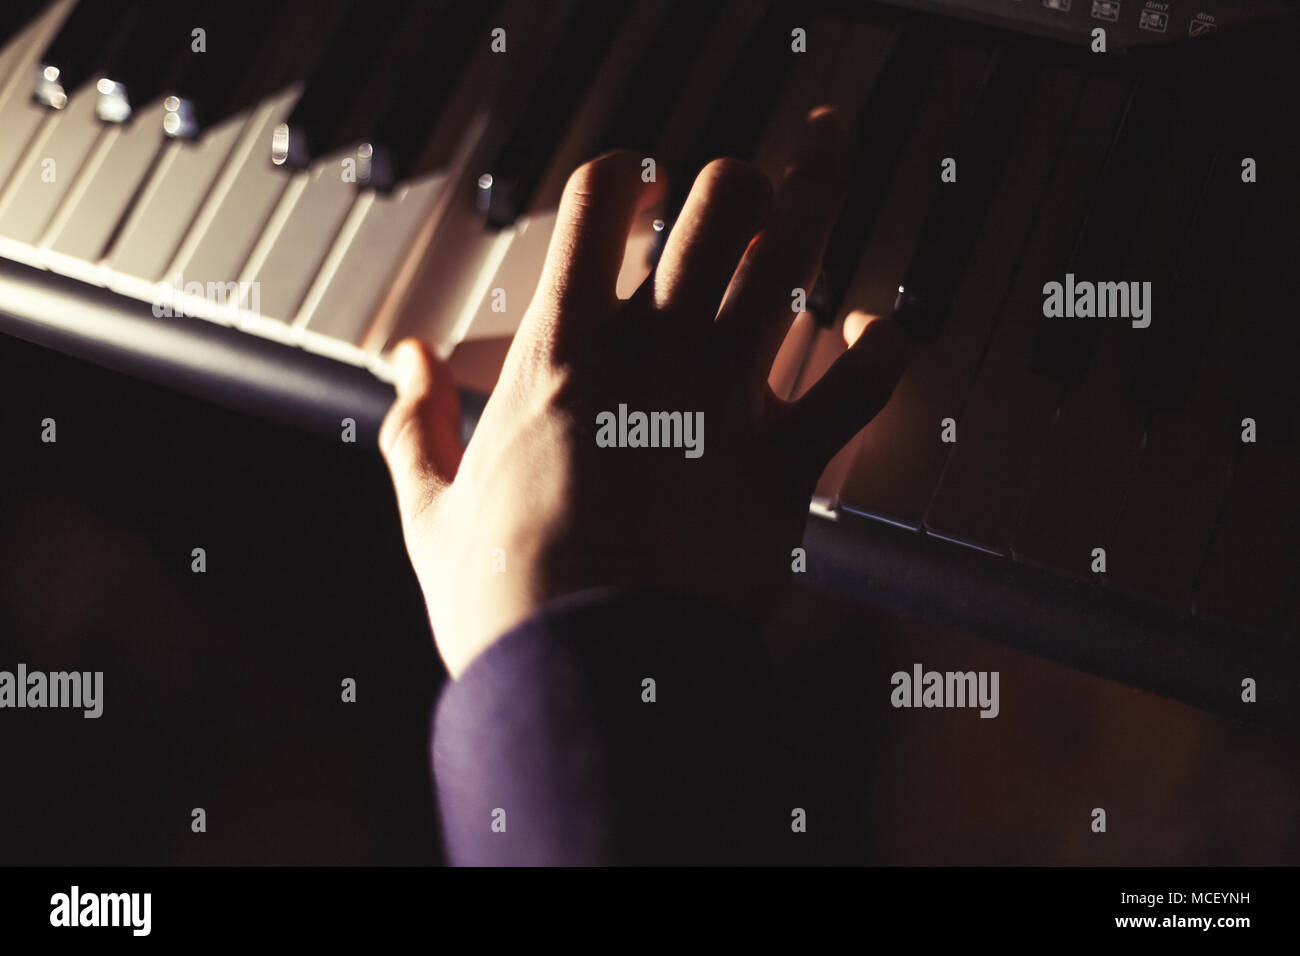 Playing on synthesizer keyboard - Stock Image